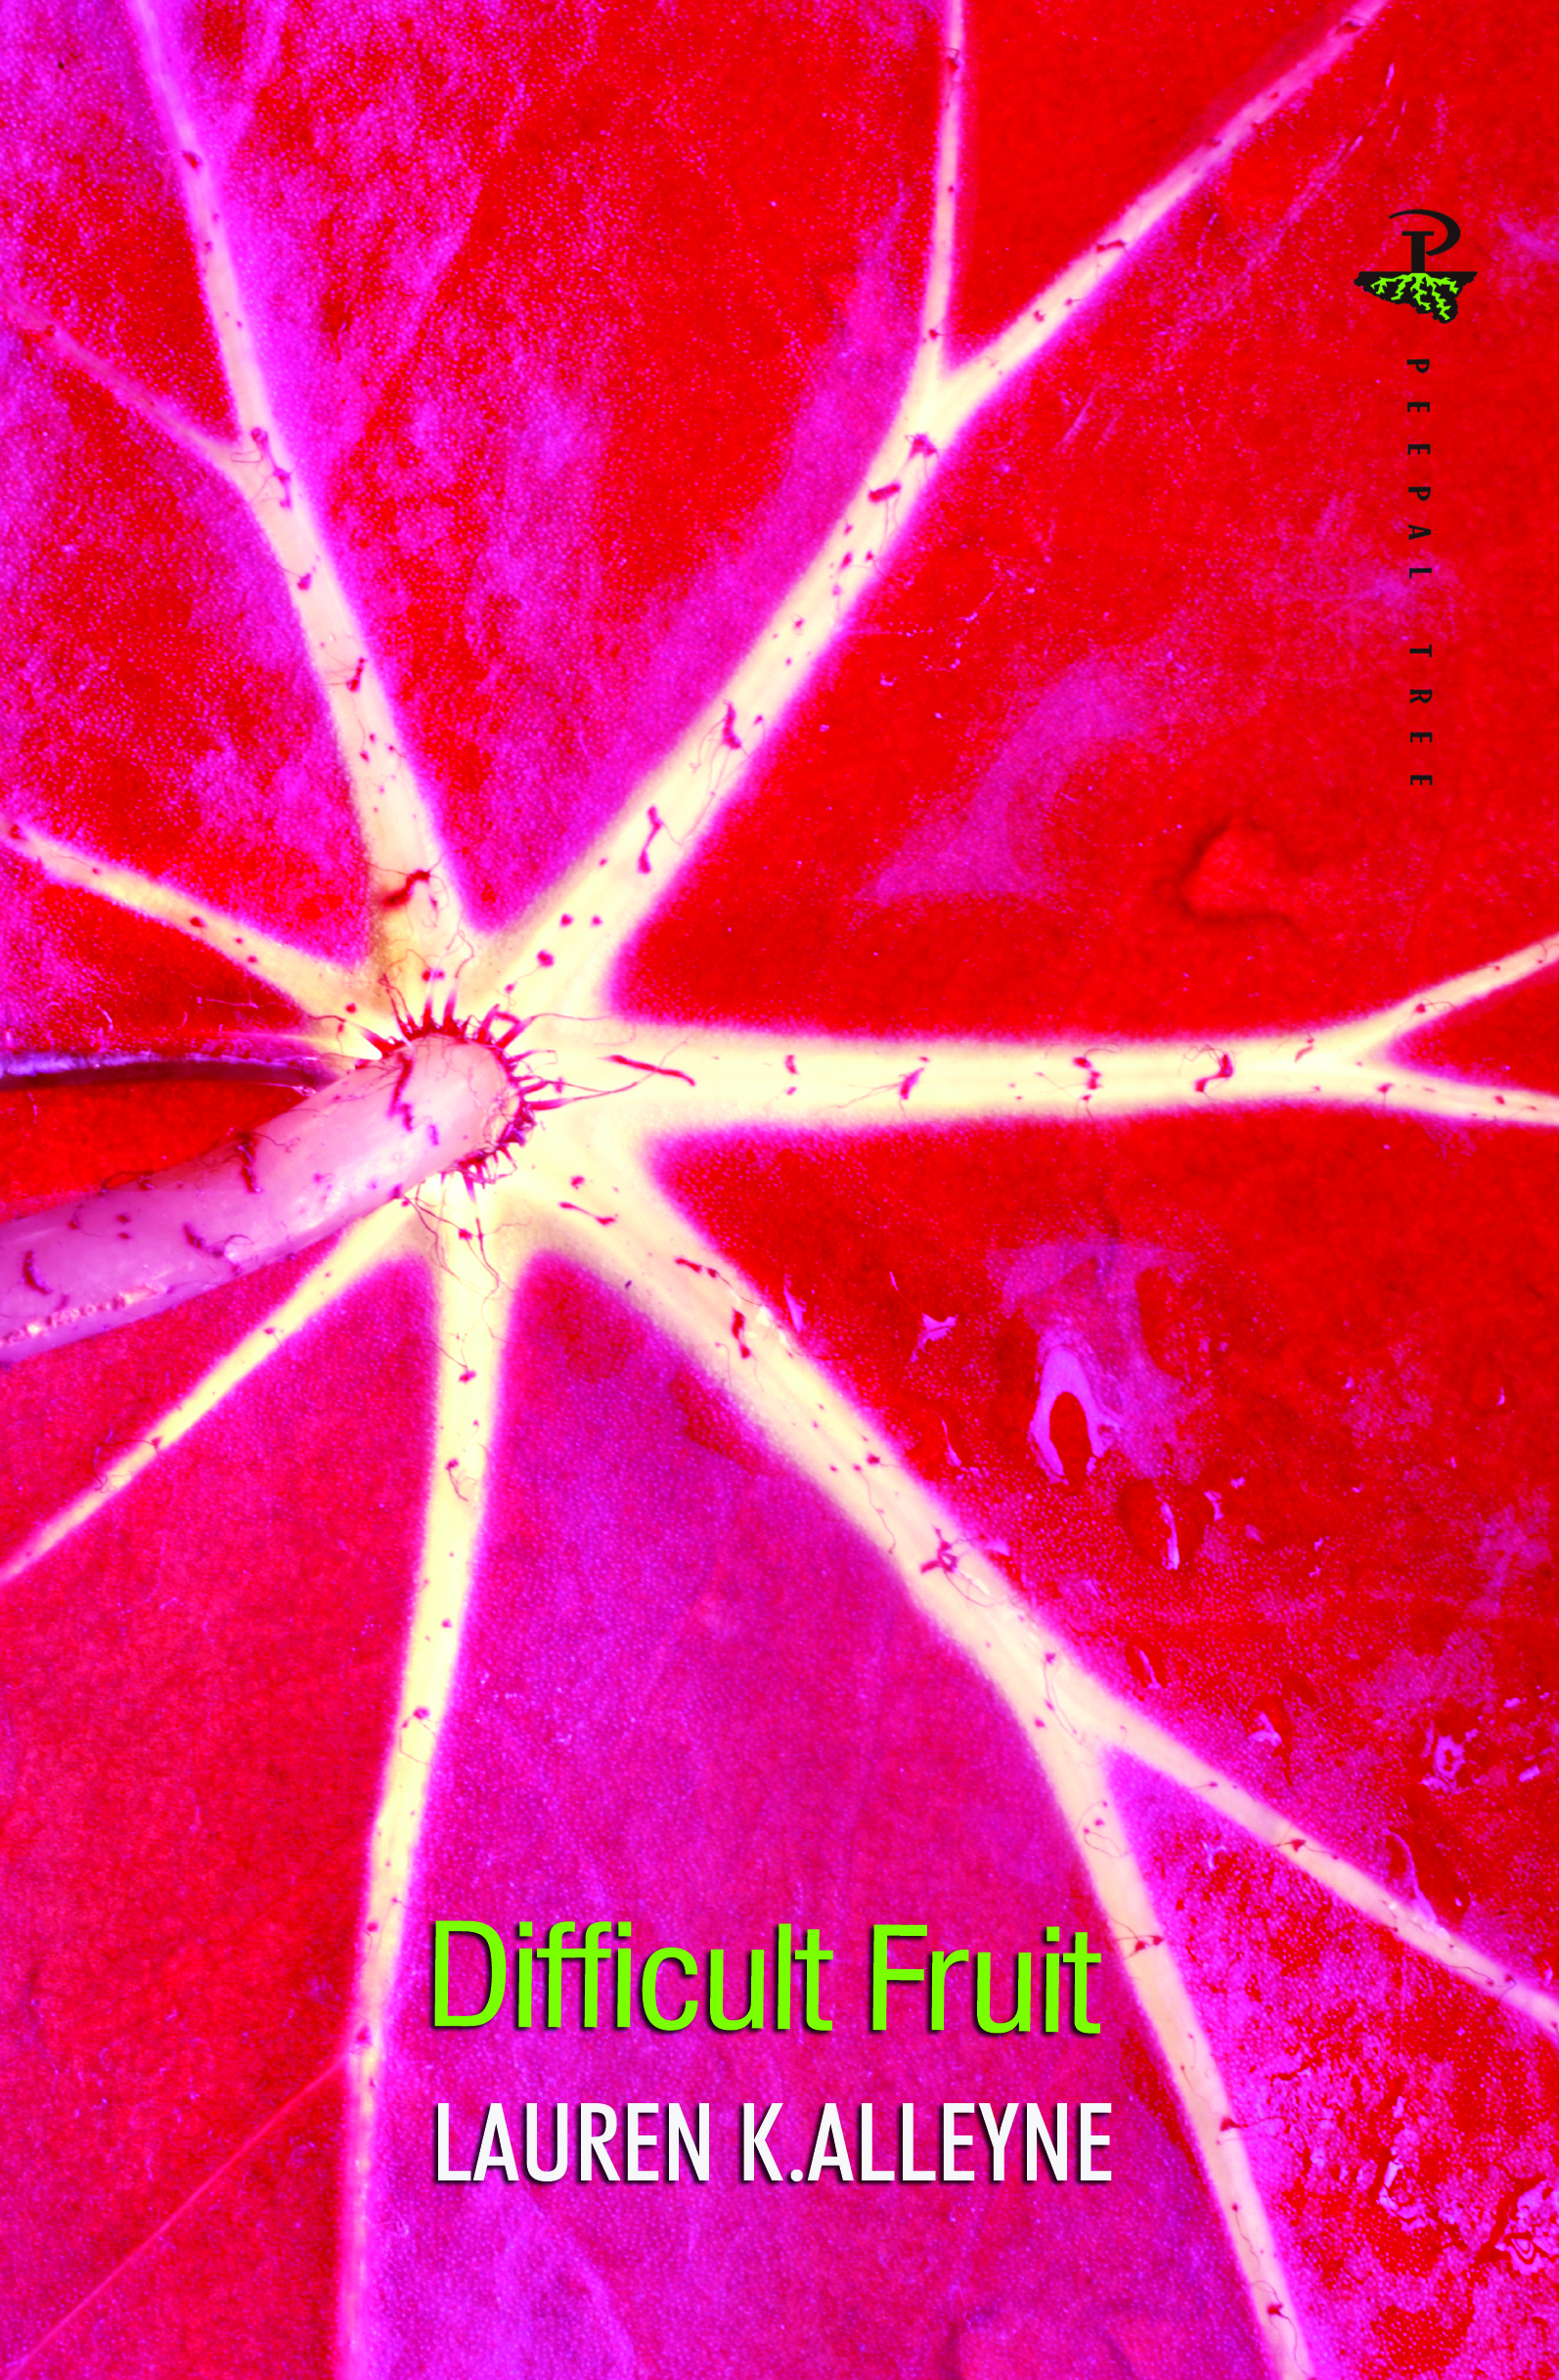 Difficult Fruit Final Cover